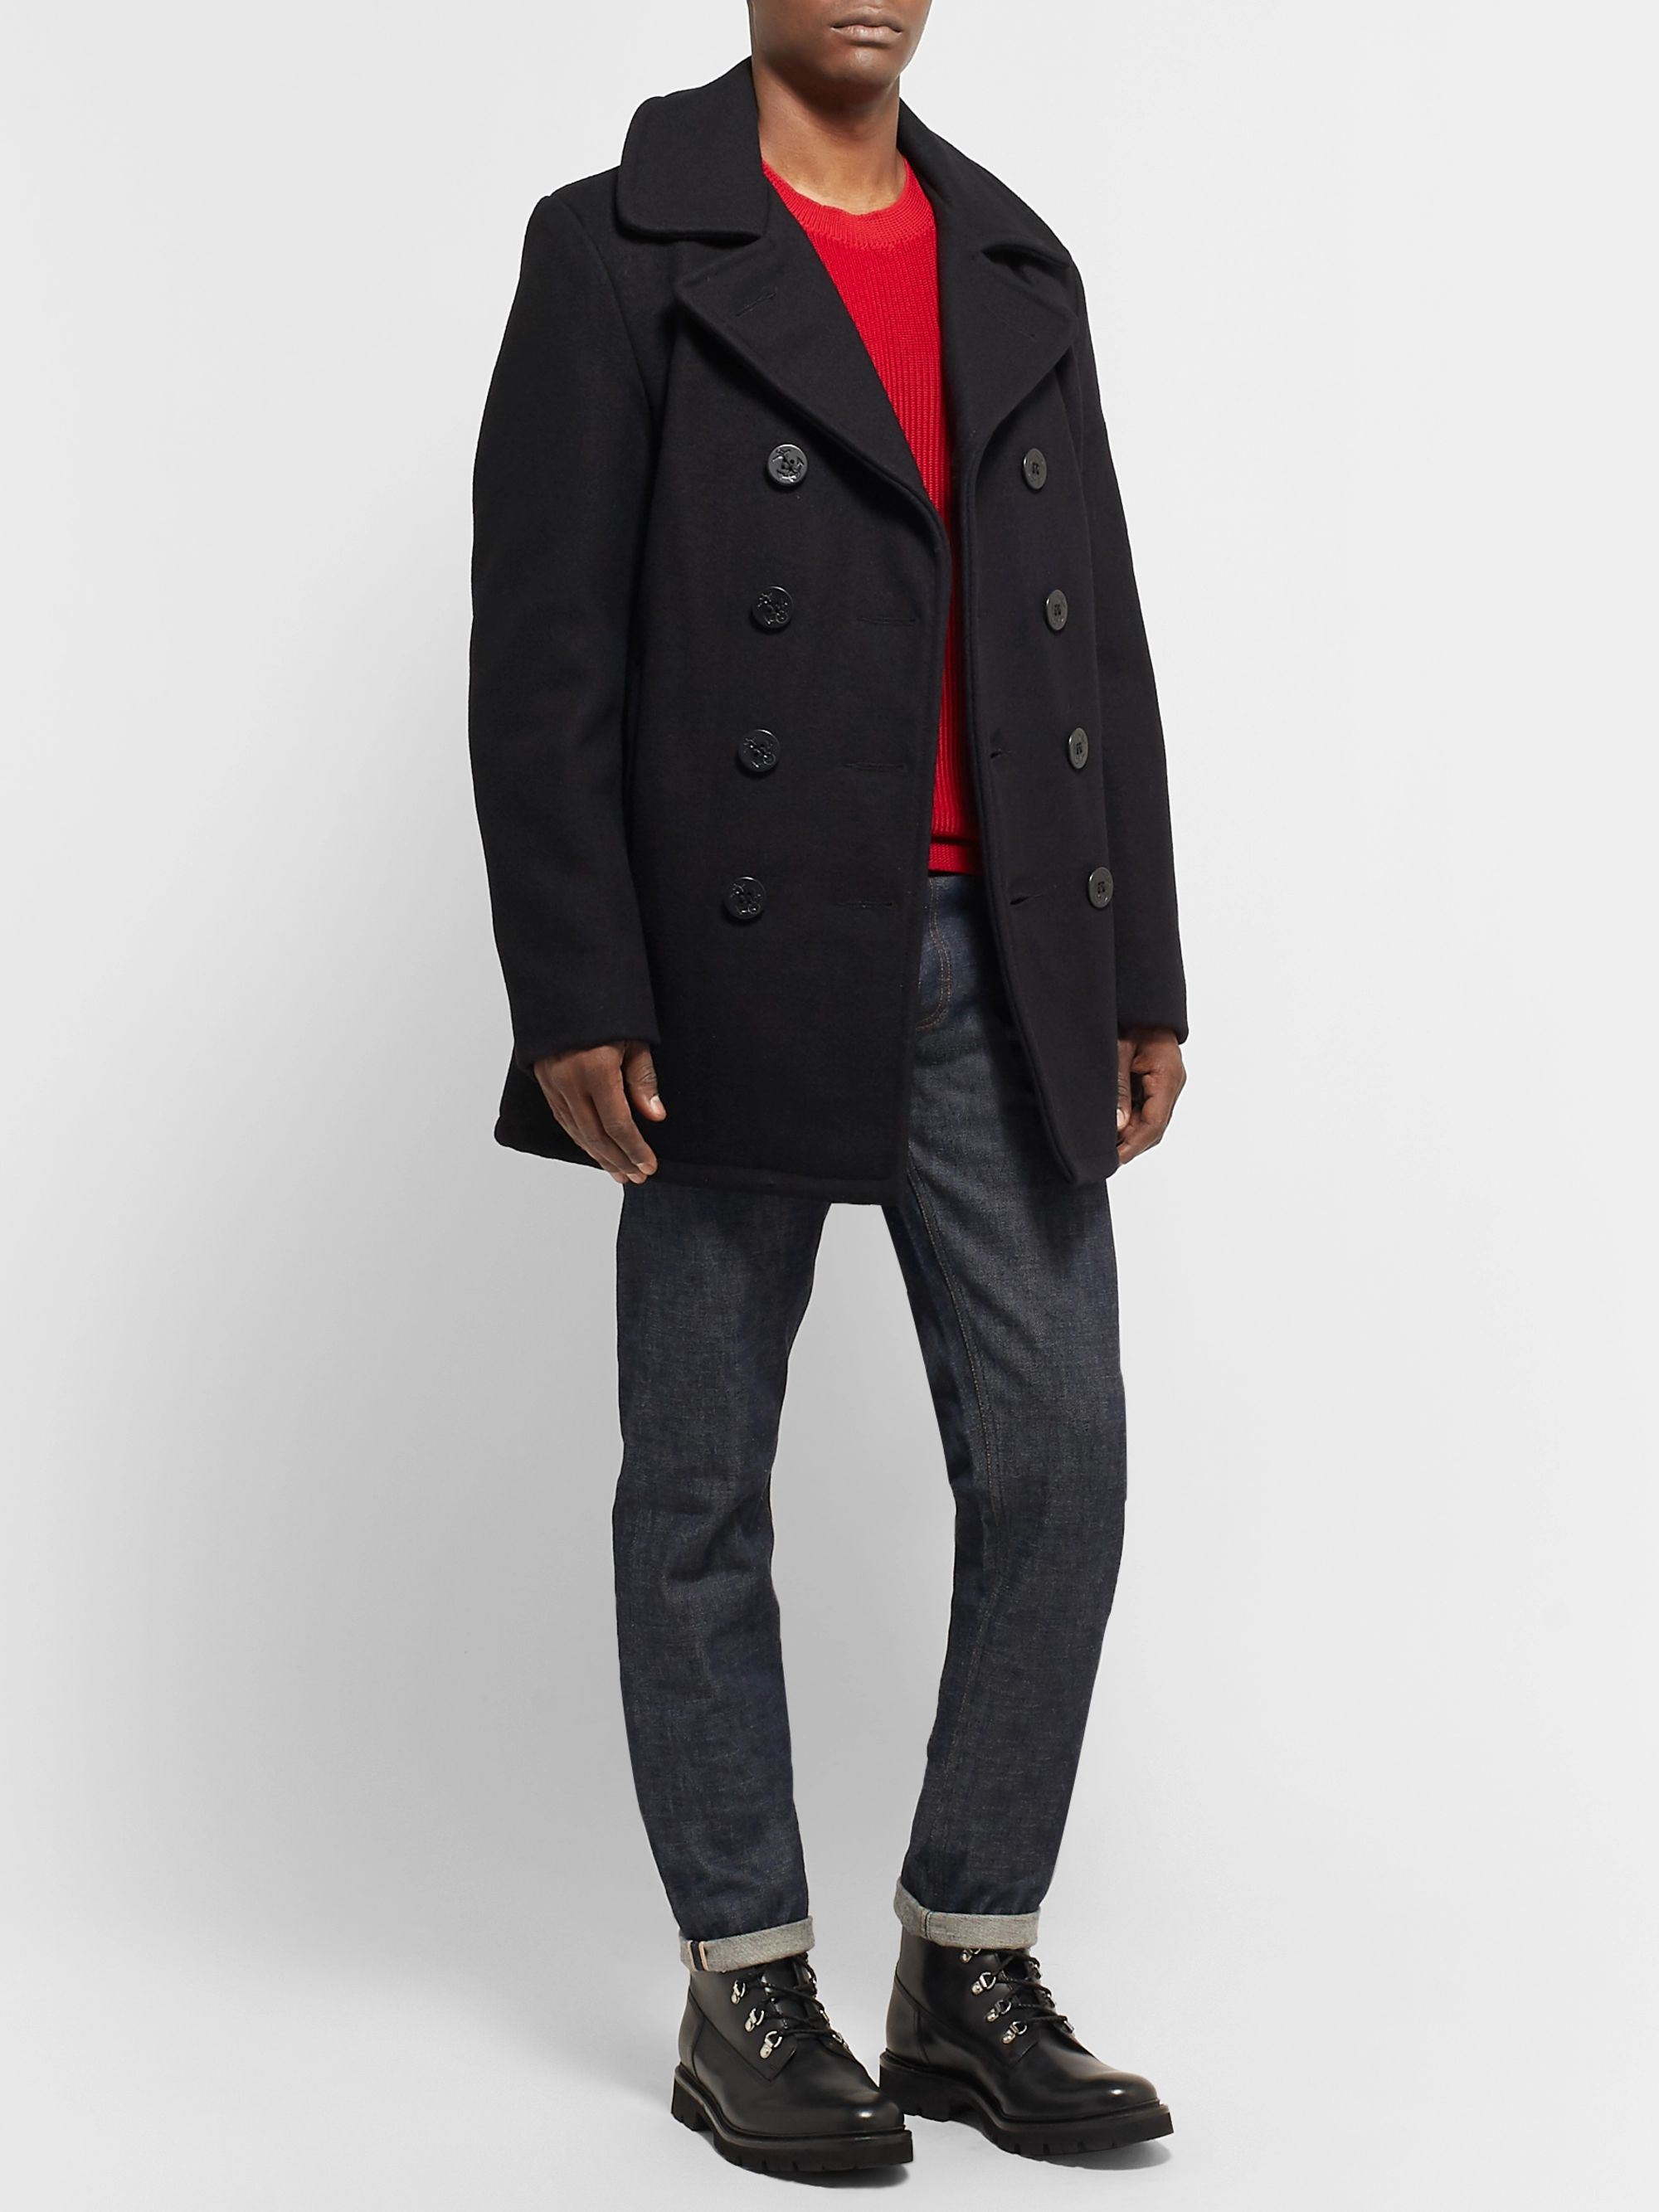 Discover hot-selling authentic Buy Authentic Melton Wool-Blend Peacoat